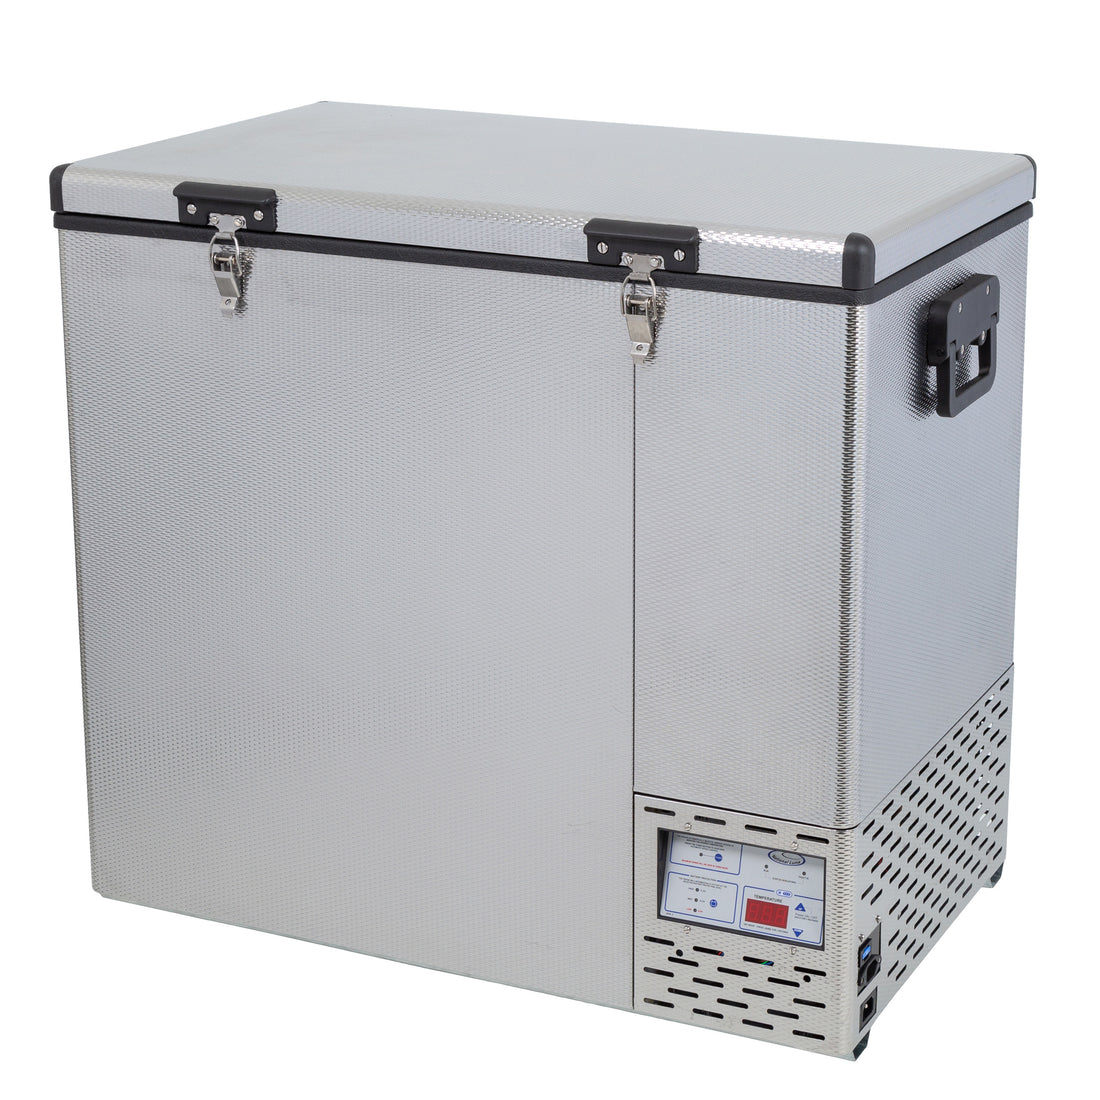 125L Legacy Fridge/Freezer